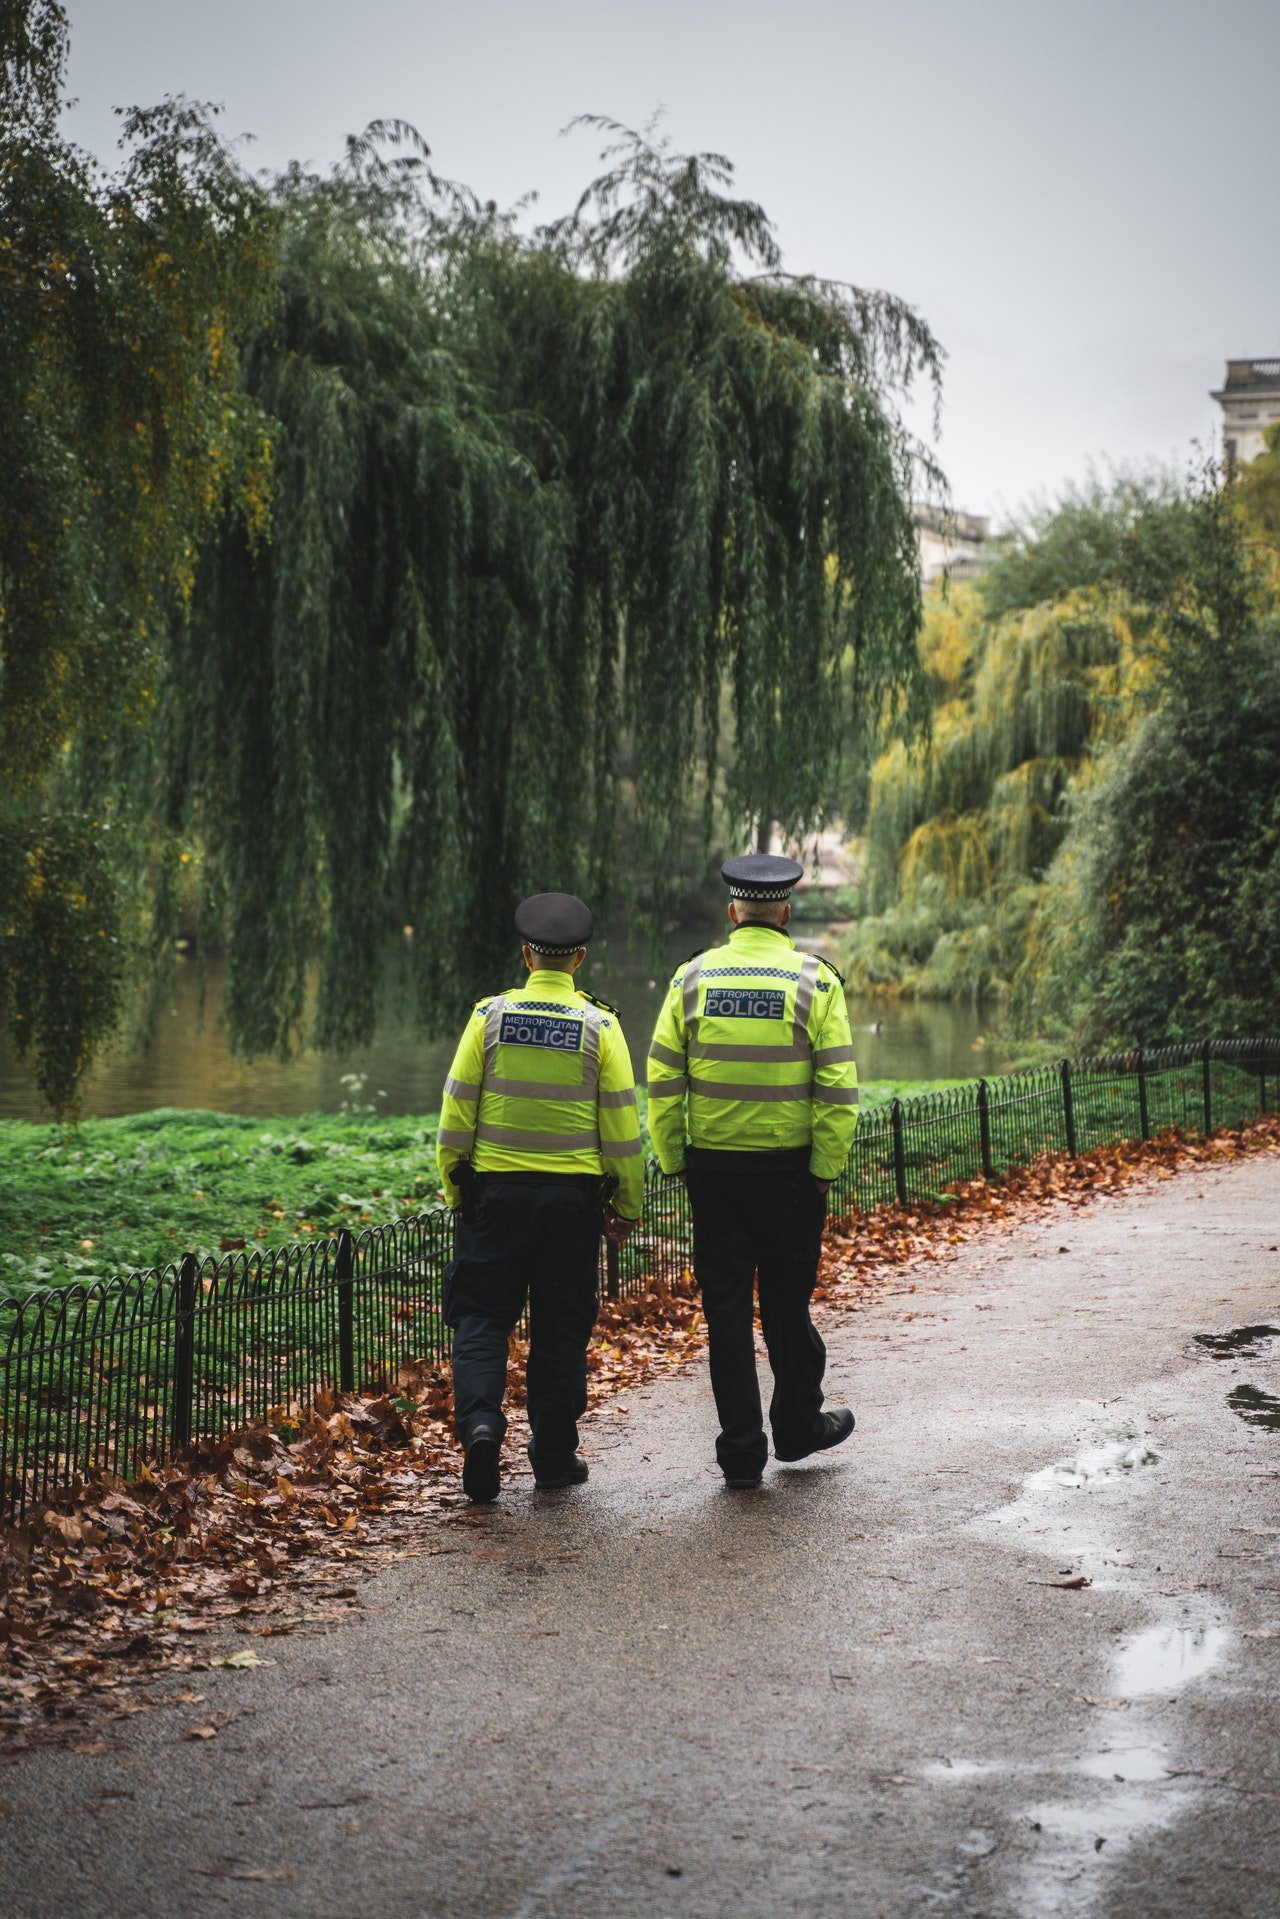 Two police officers walking along the road | Photo: Pexels